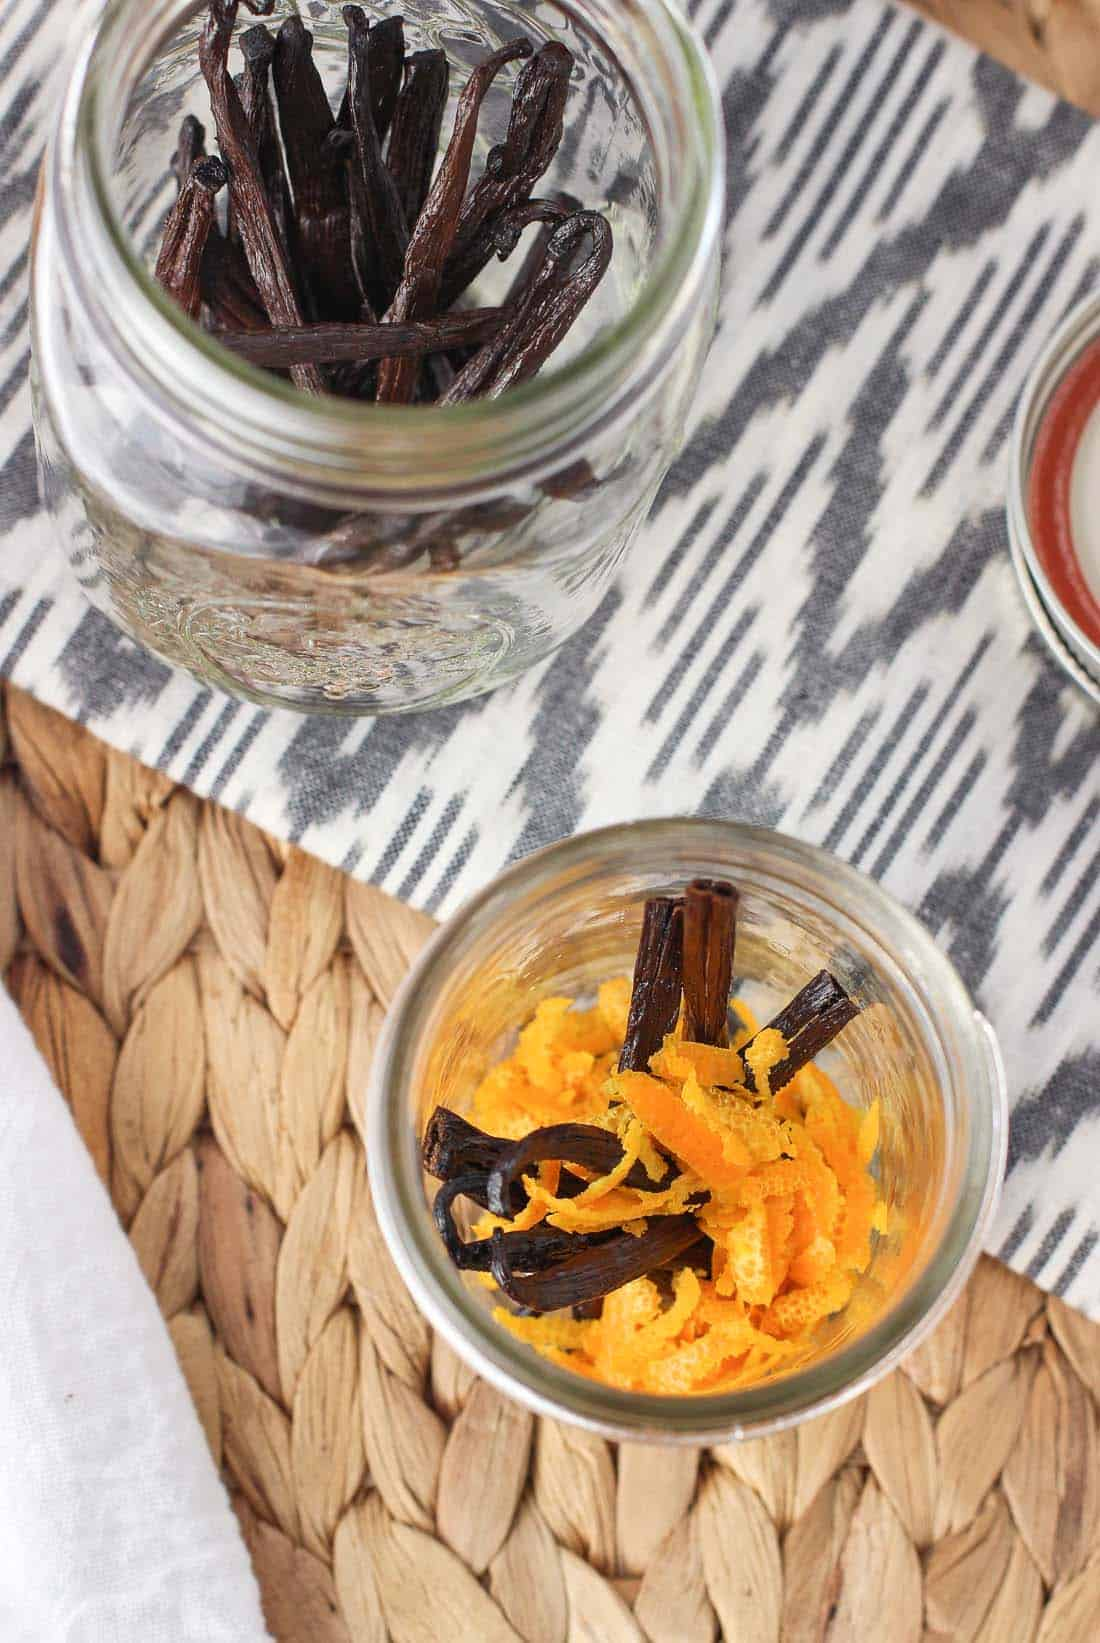 Vanilla beans and grated orange rind in a glass jar.